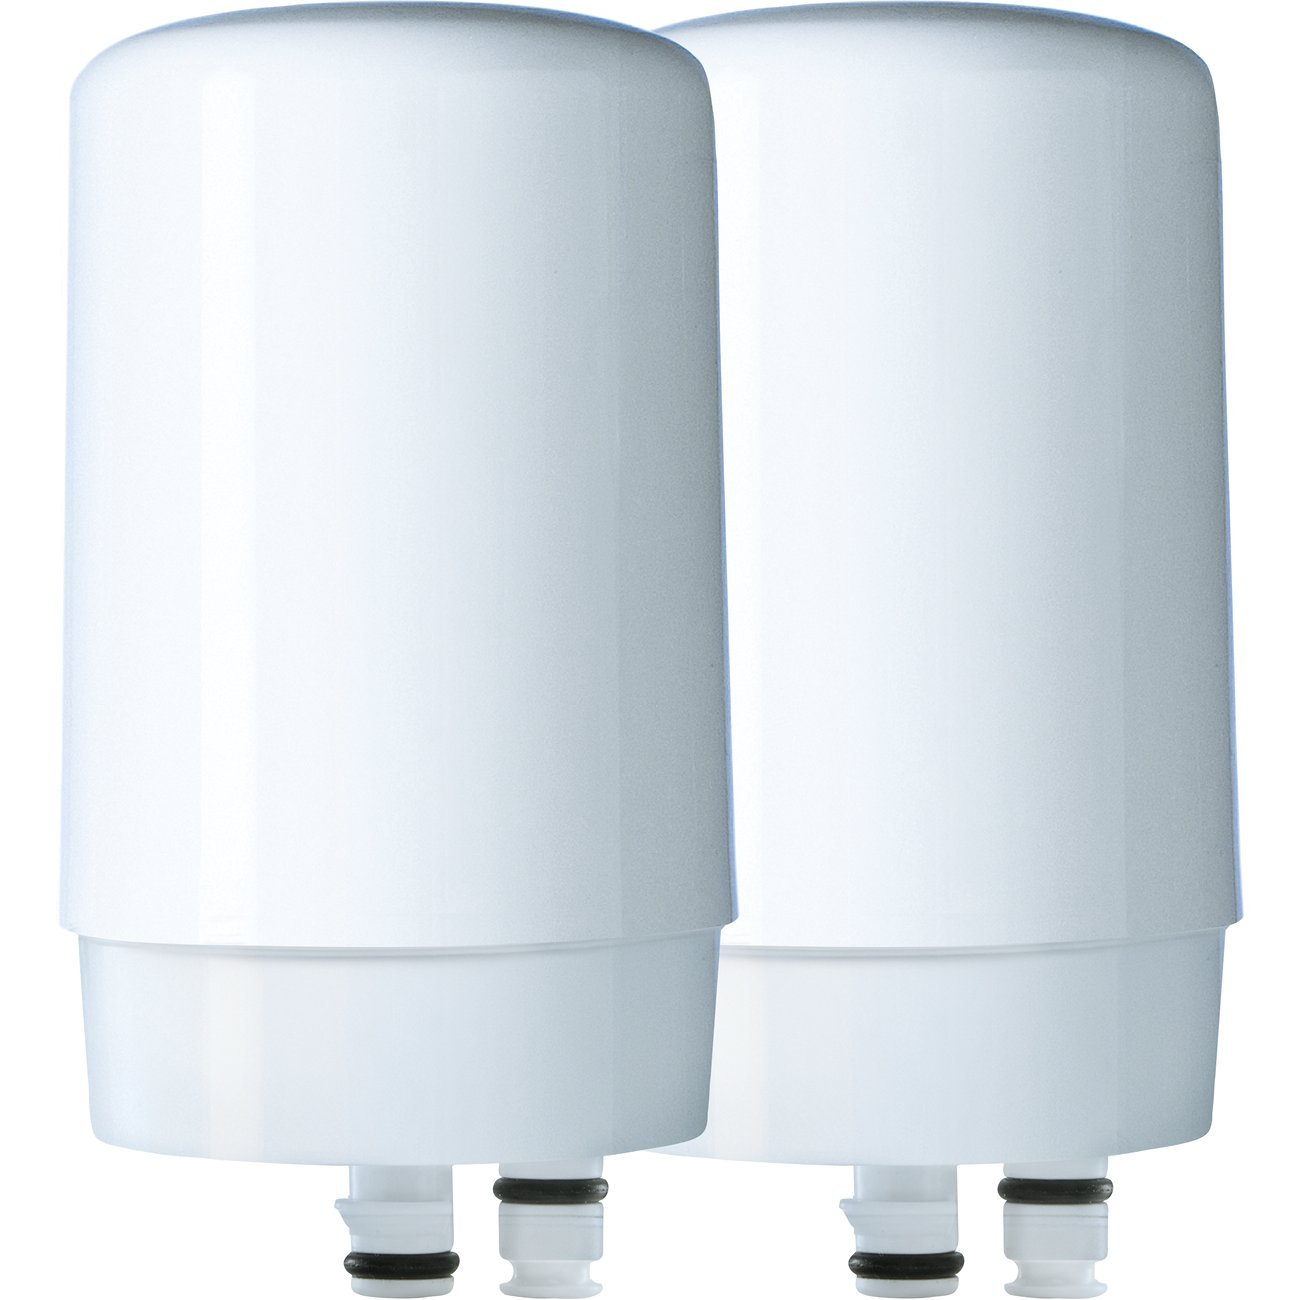 Brita Tap Water Filtration System Replacement Filters for Faucets - White - 2 Count by Brita